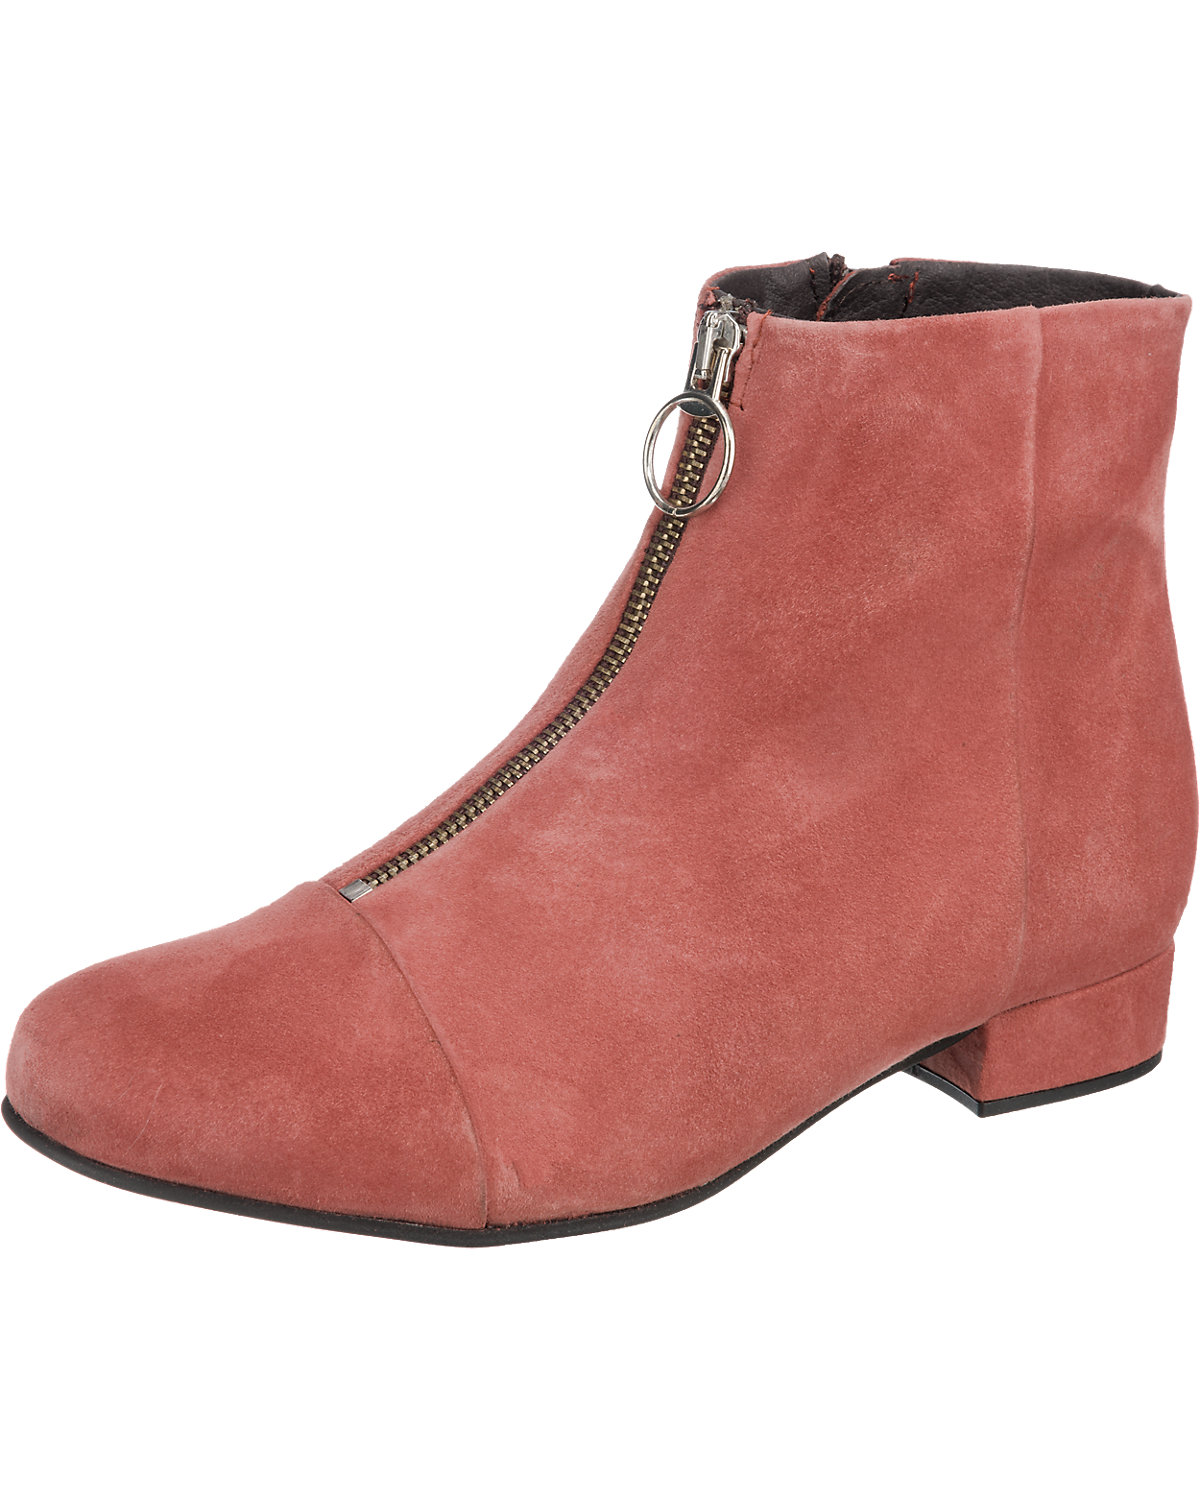 Pavement, Pavement Sille zip Stiefeletten, rosa